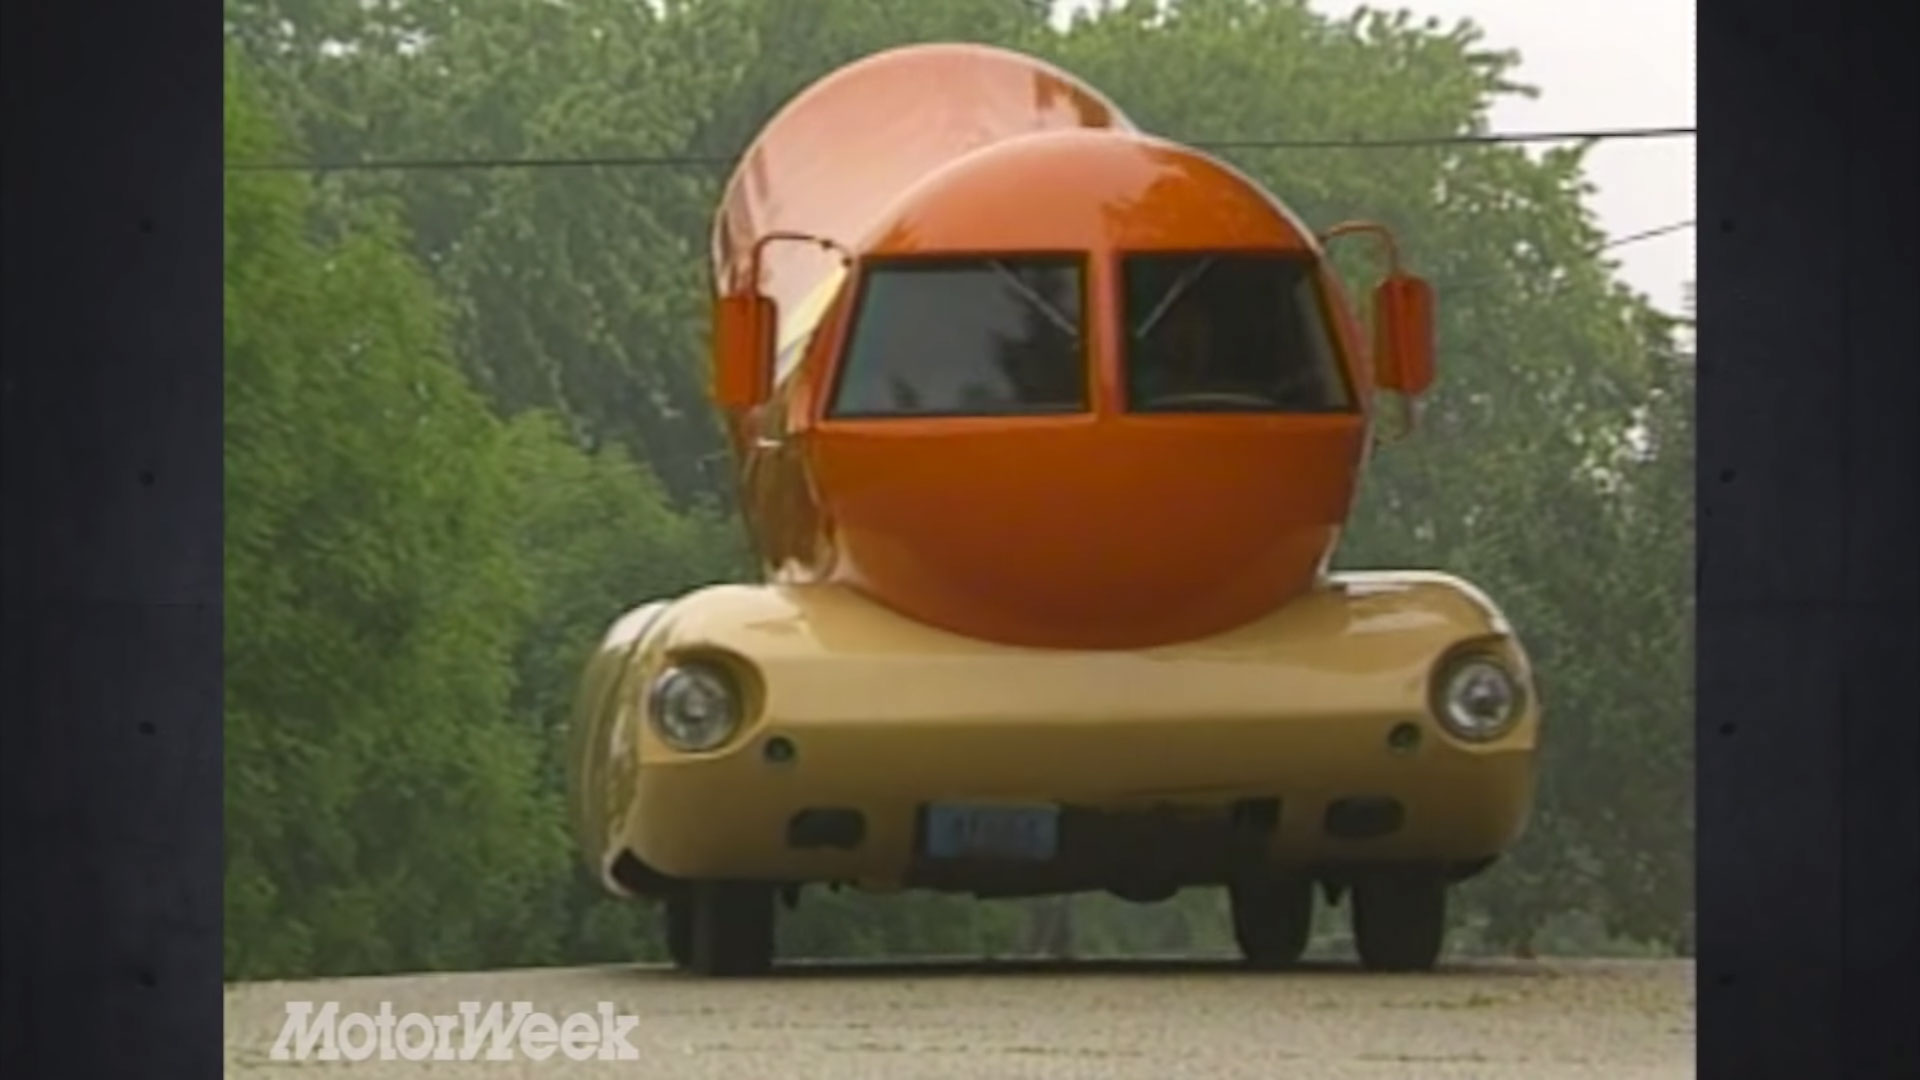 In 1988, Dave Stevens' Oscar Mayer Wienermobile was reborn thumbnail